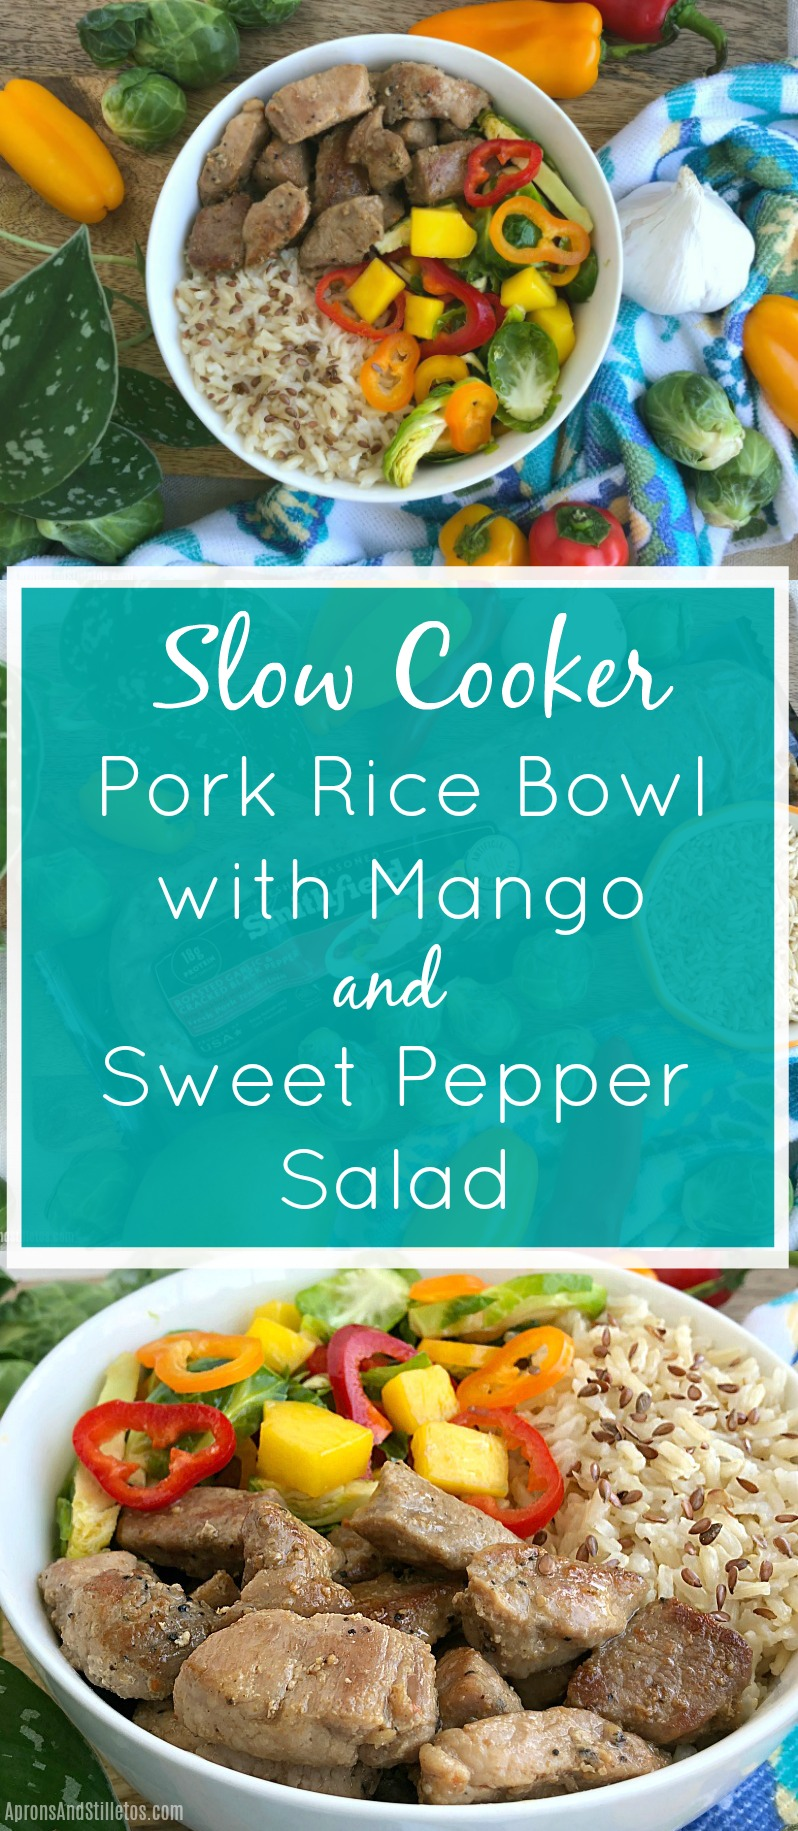 Slow Cooker Pork Rice Bowl with Mango & Sweet Pepper Salad